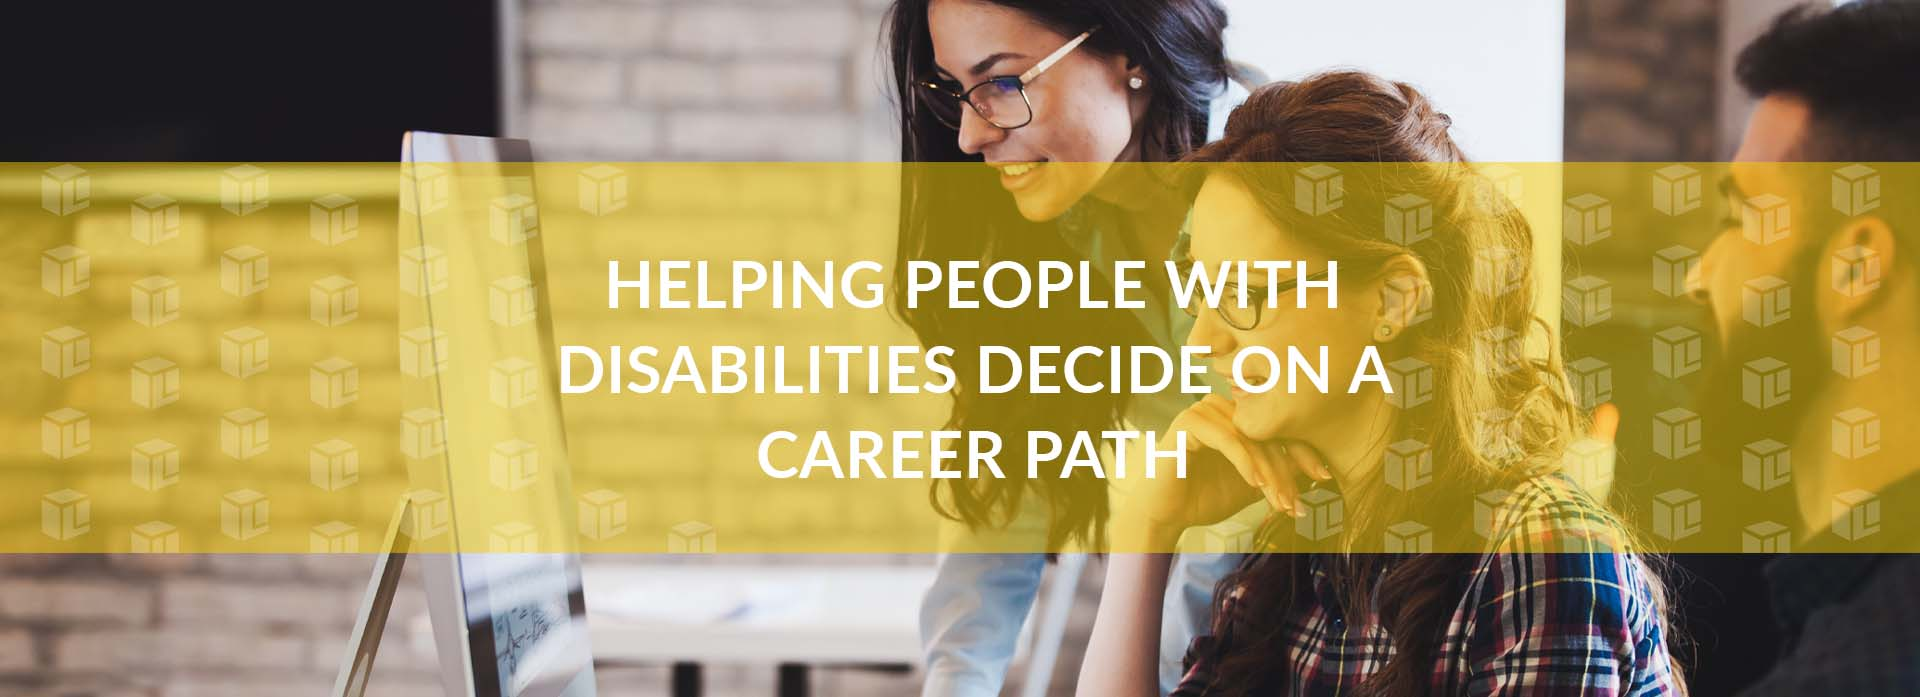 Helping People With Disabilities Decide On A Career Path